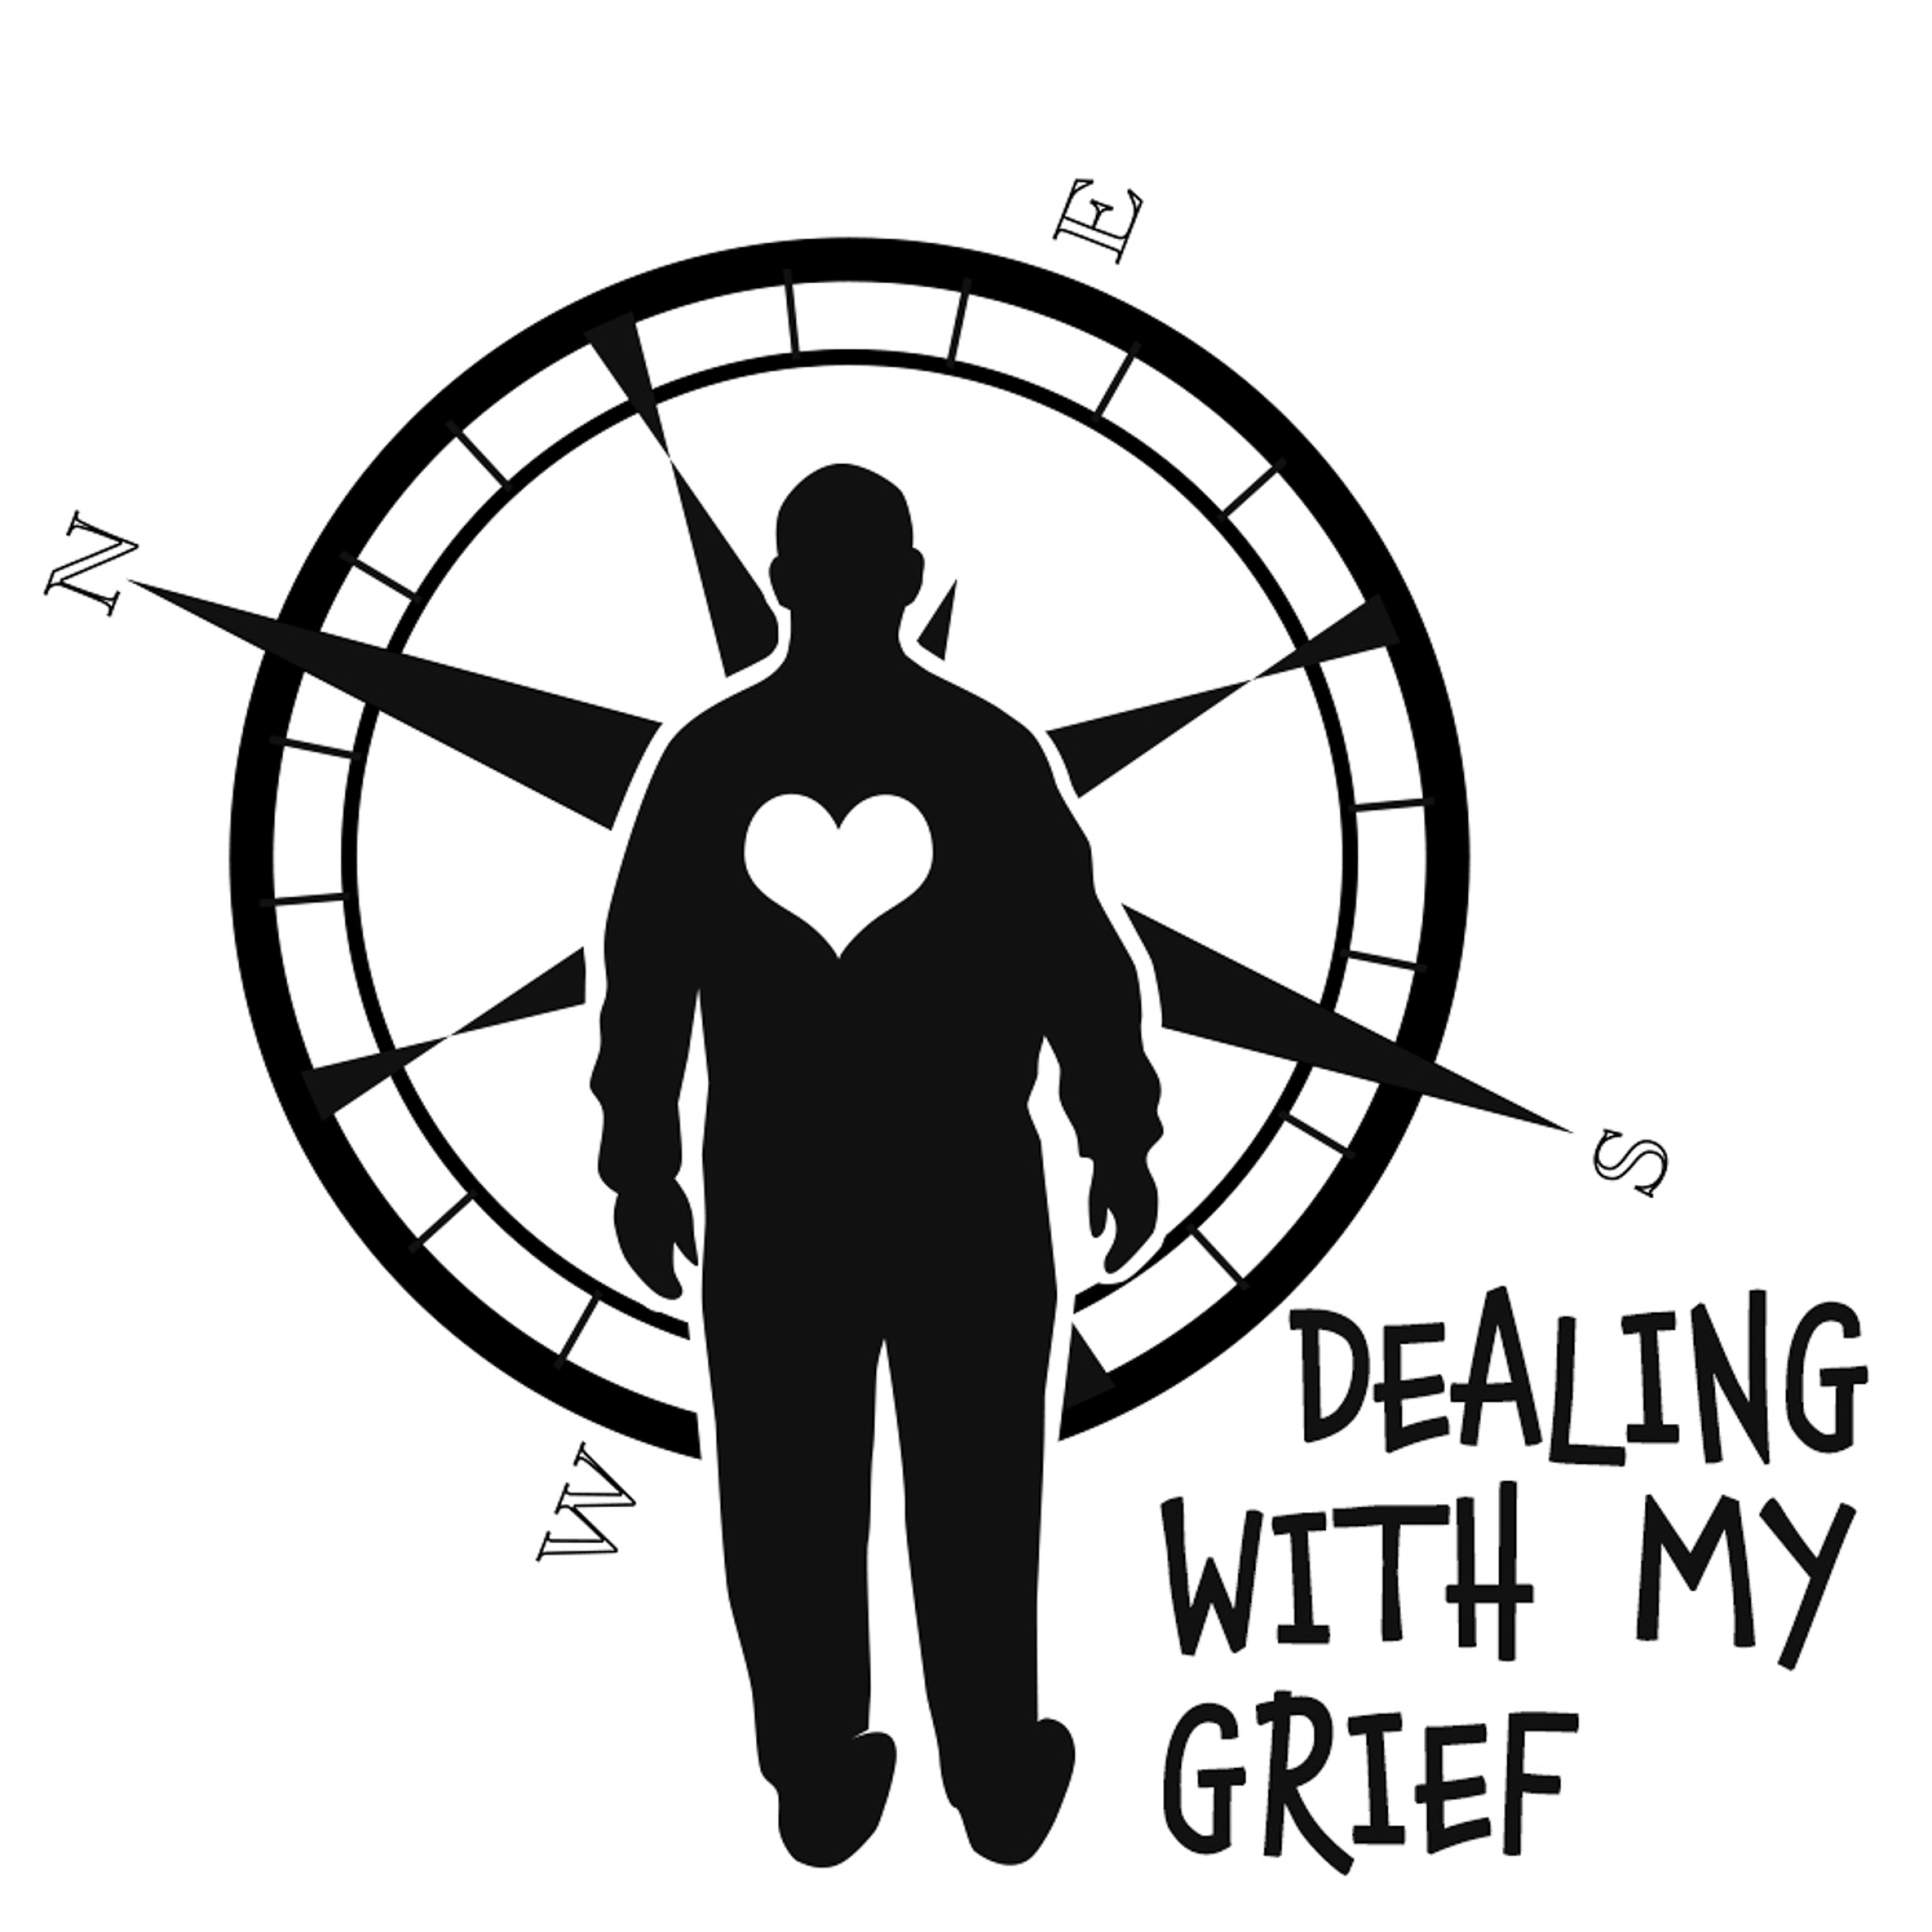 Dealing With My Grief show art